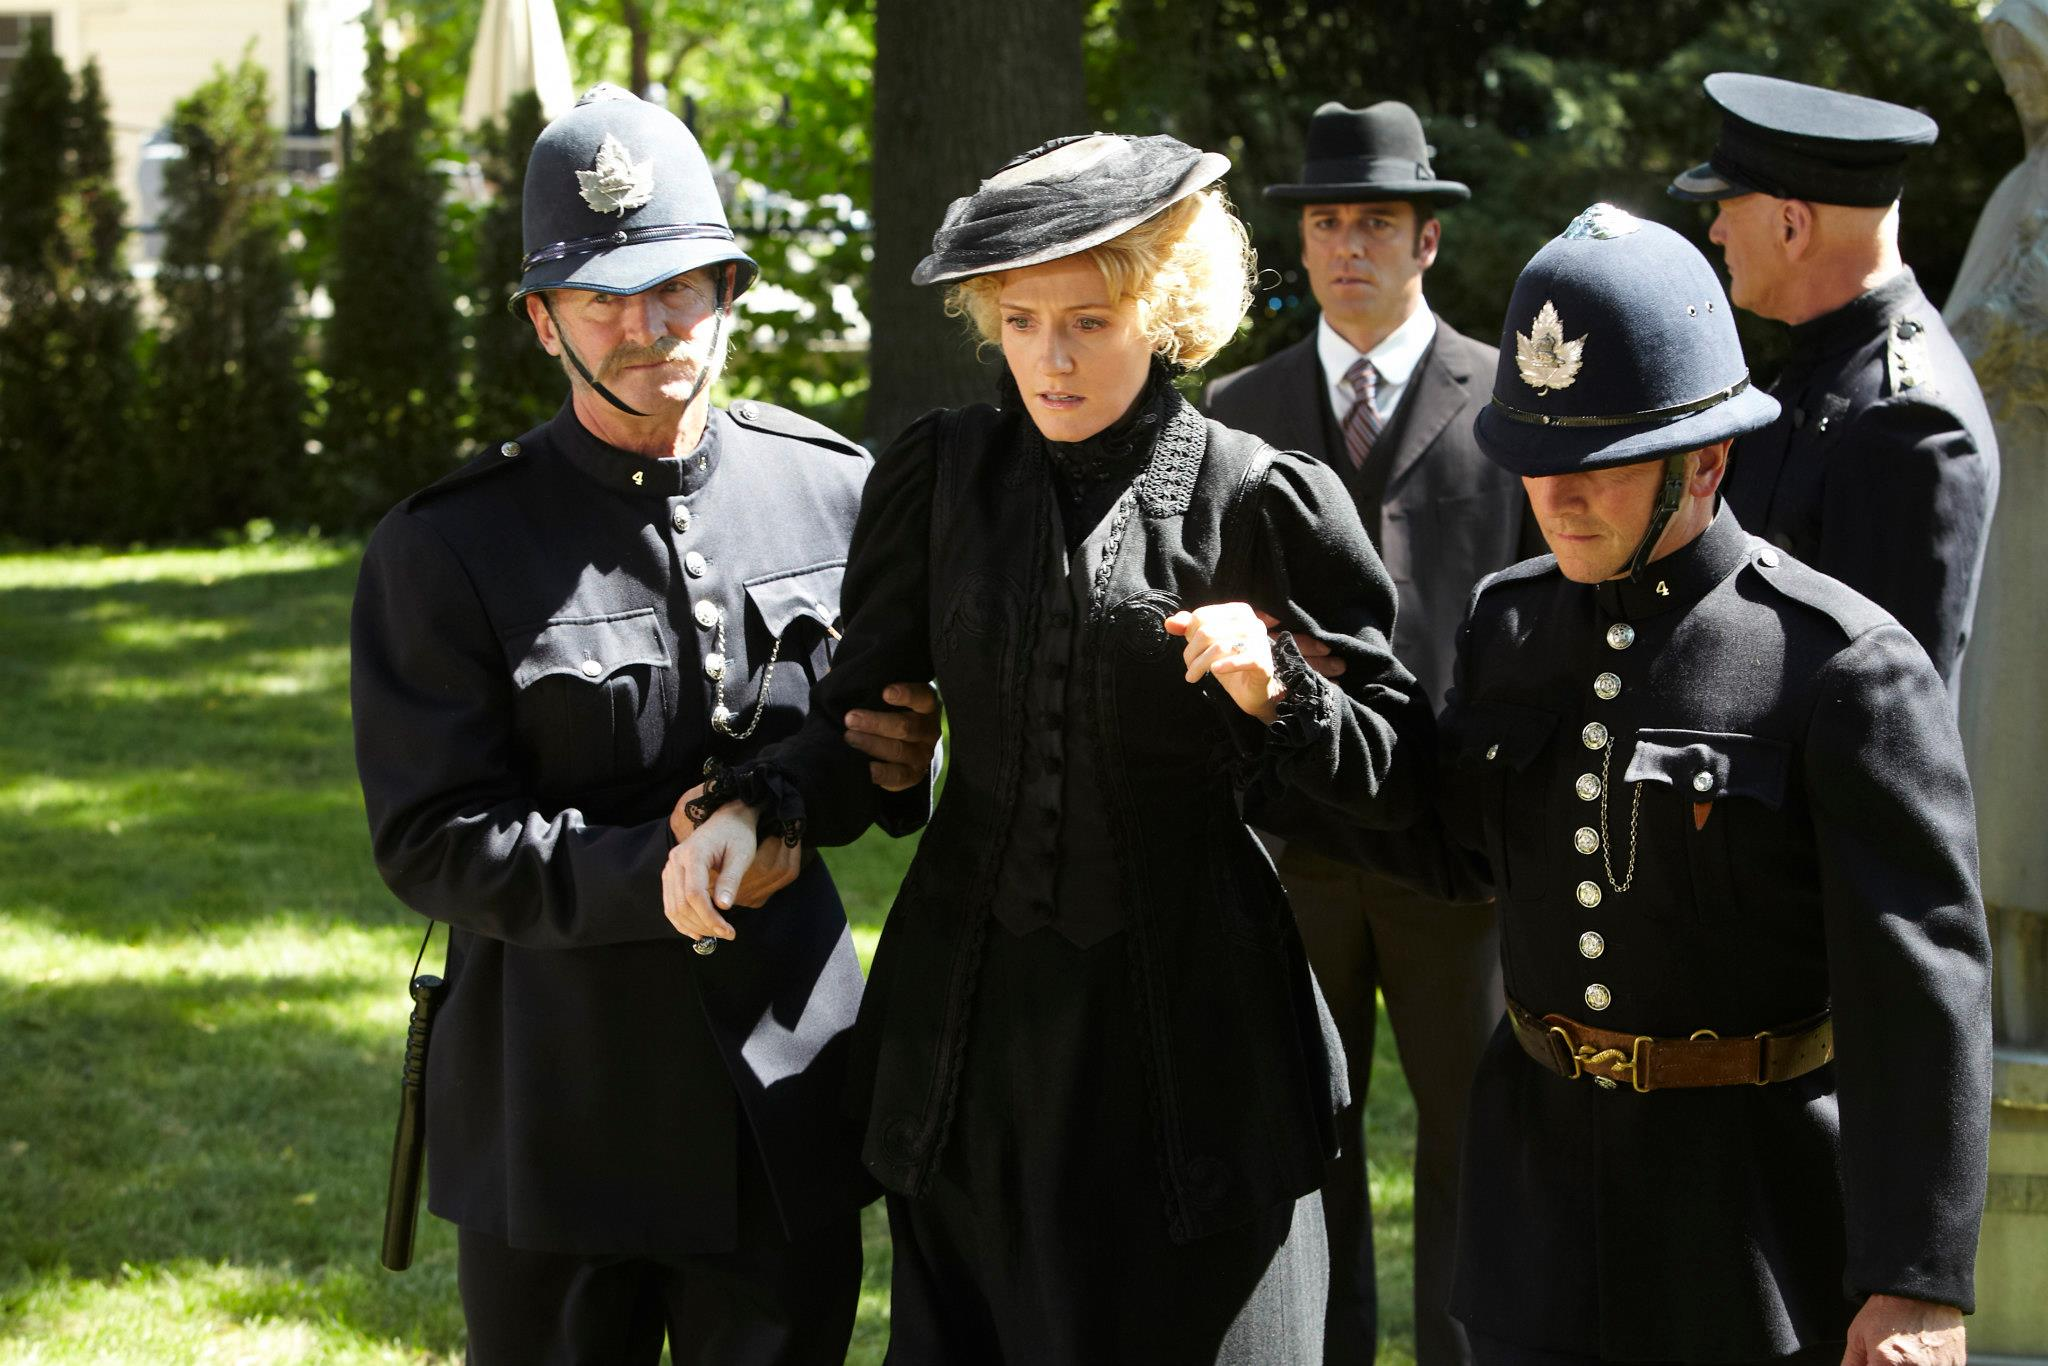 Murdoch Mysteries - Crime and Punishment (1)